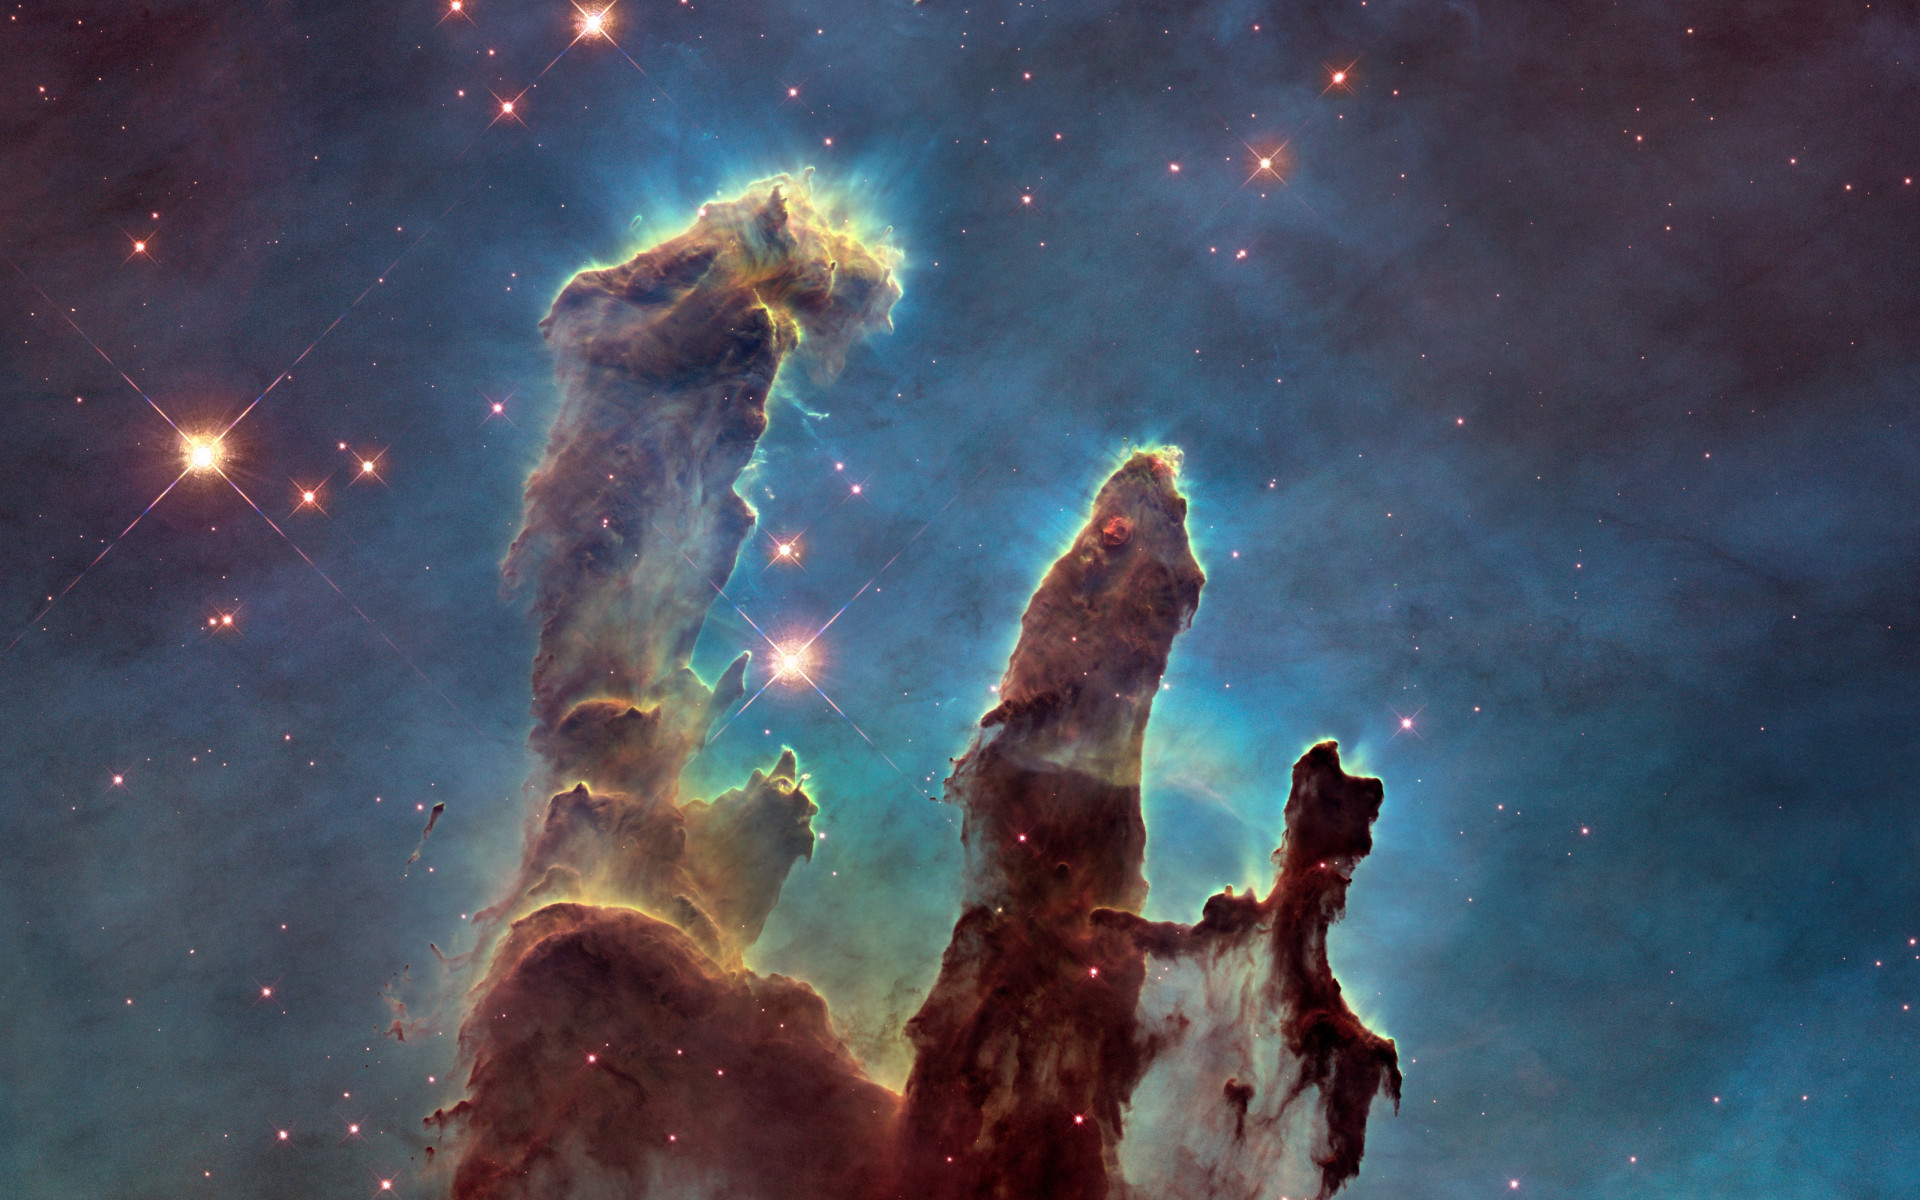 The Eagle Nebula's Pillars of Creation | 1920x1200 wallpaper